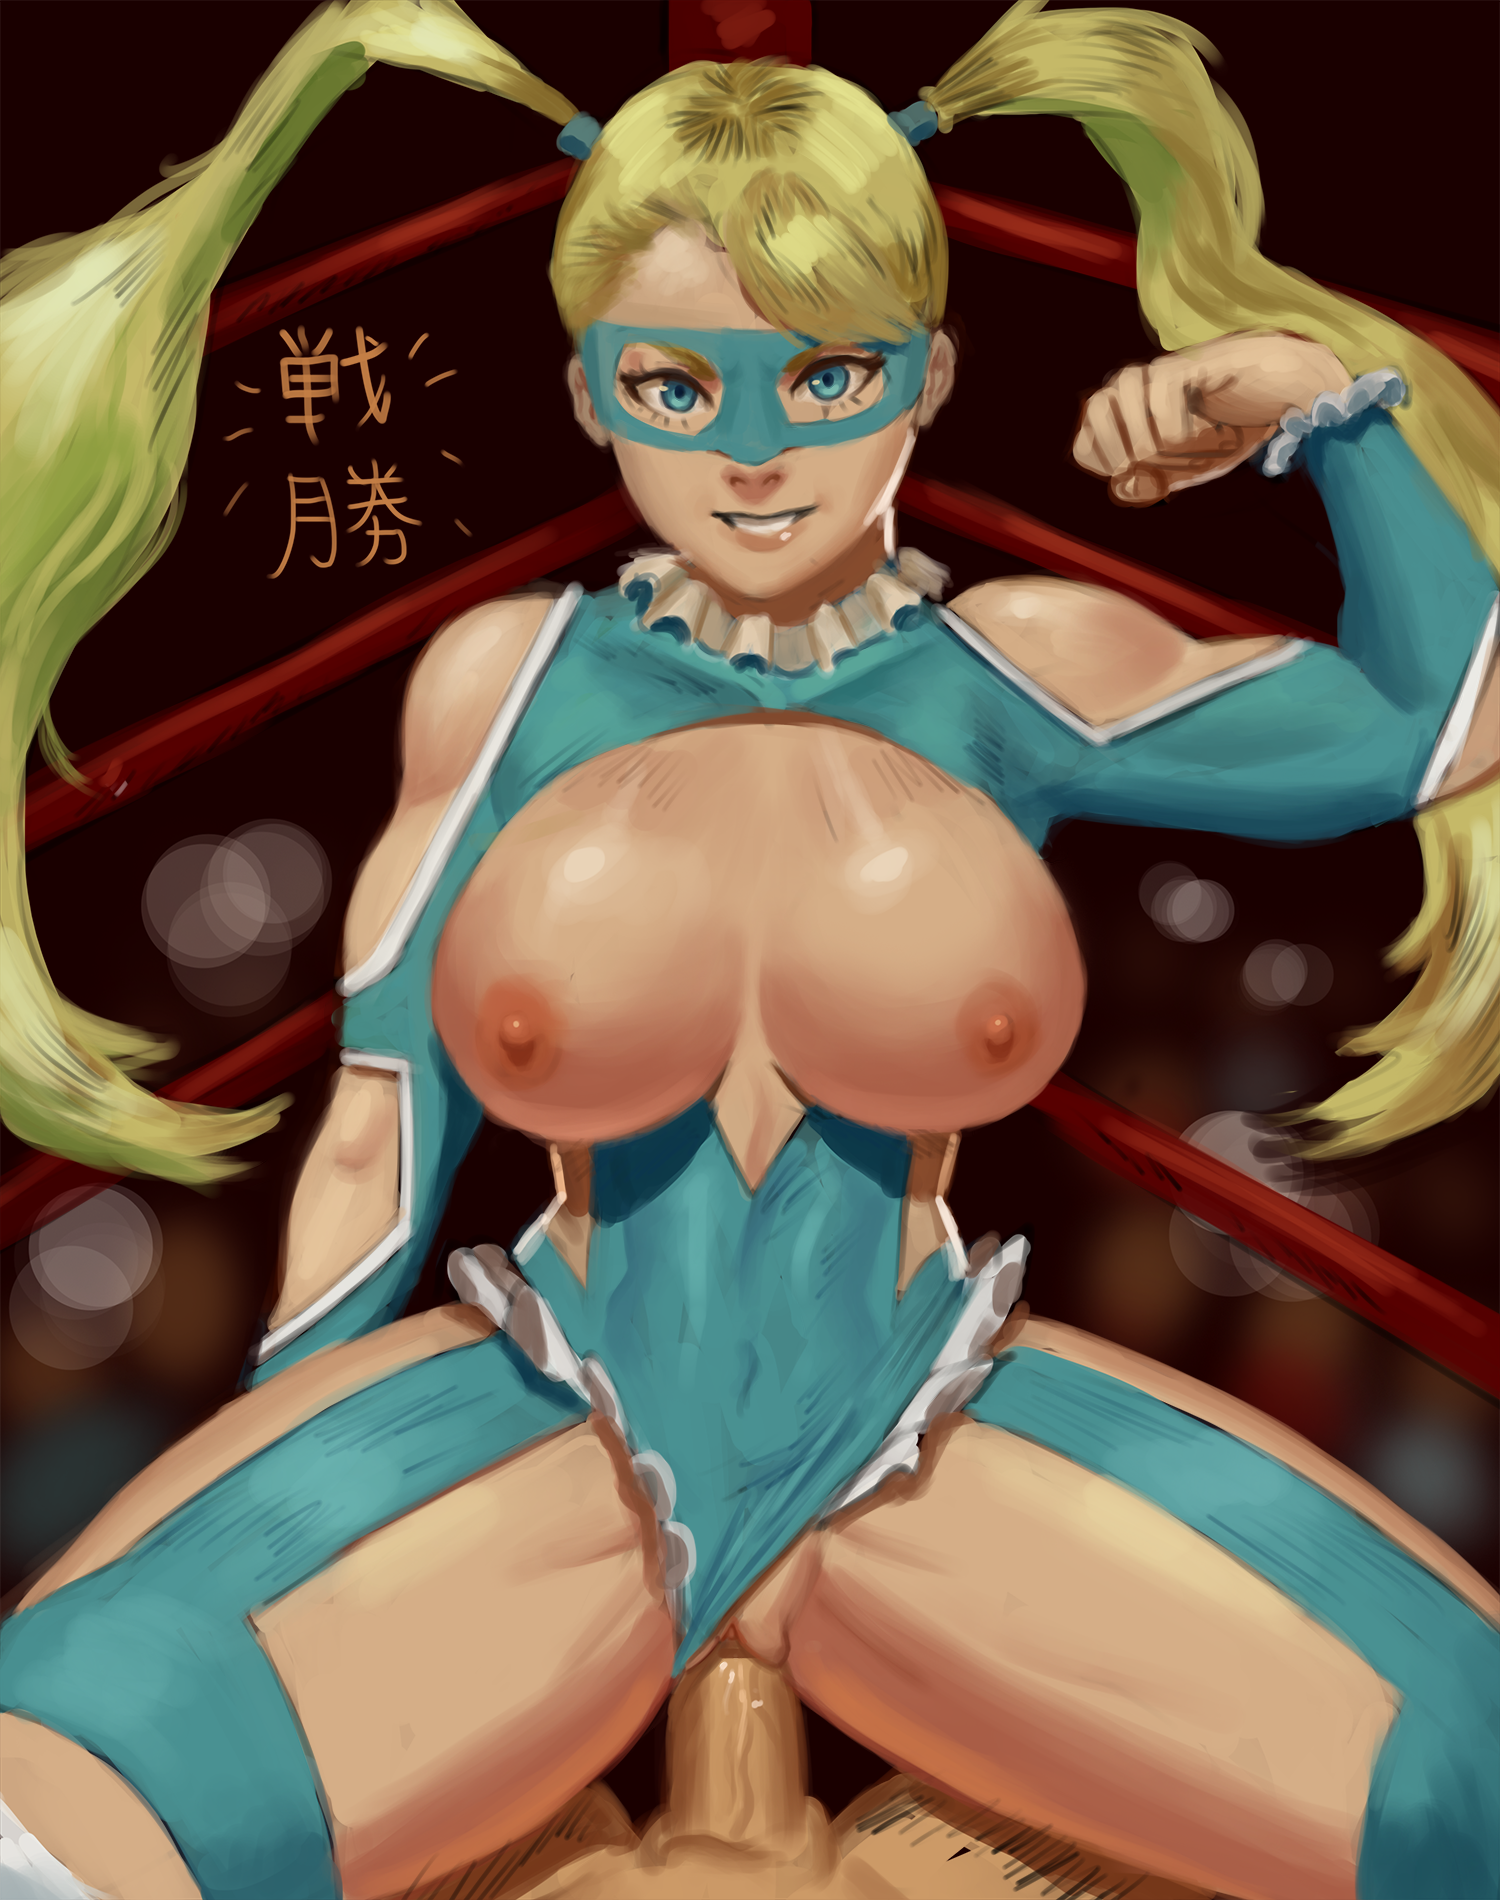 Erotic street fighter sex think